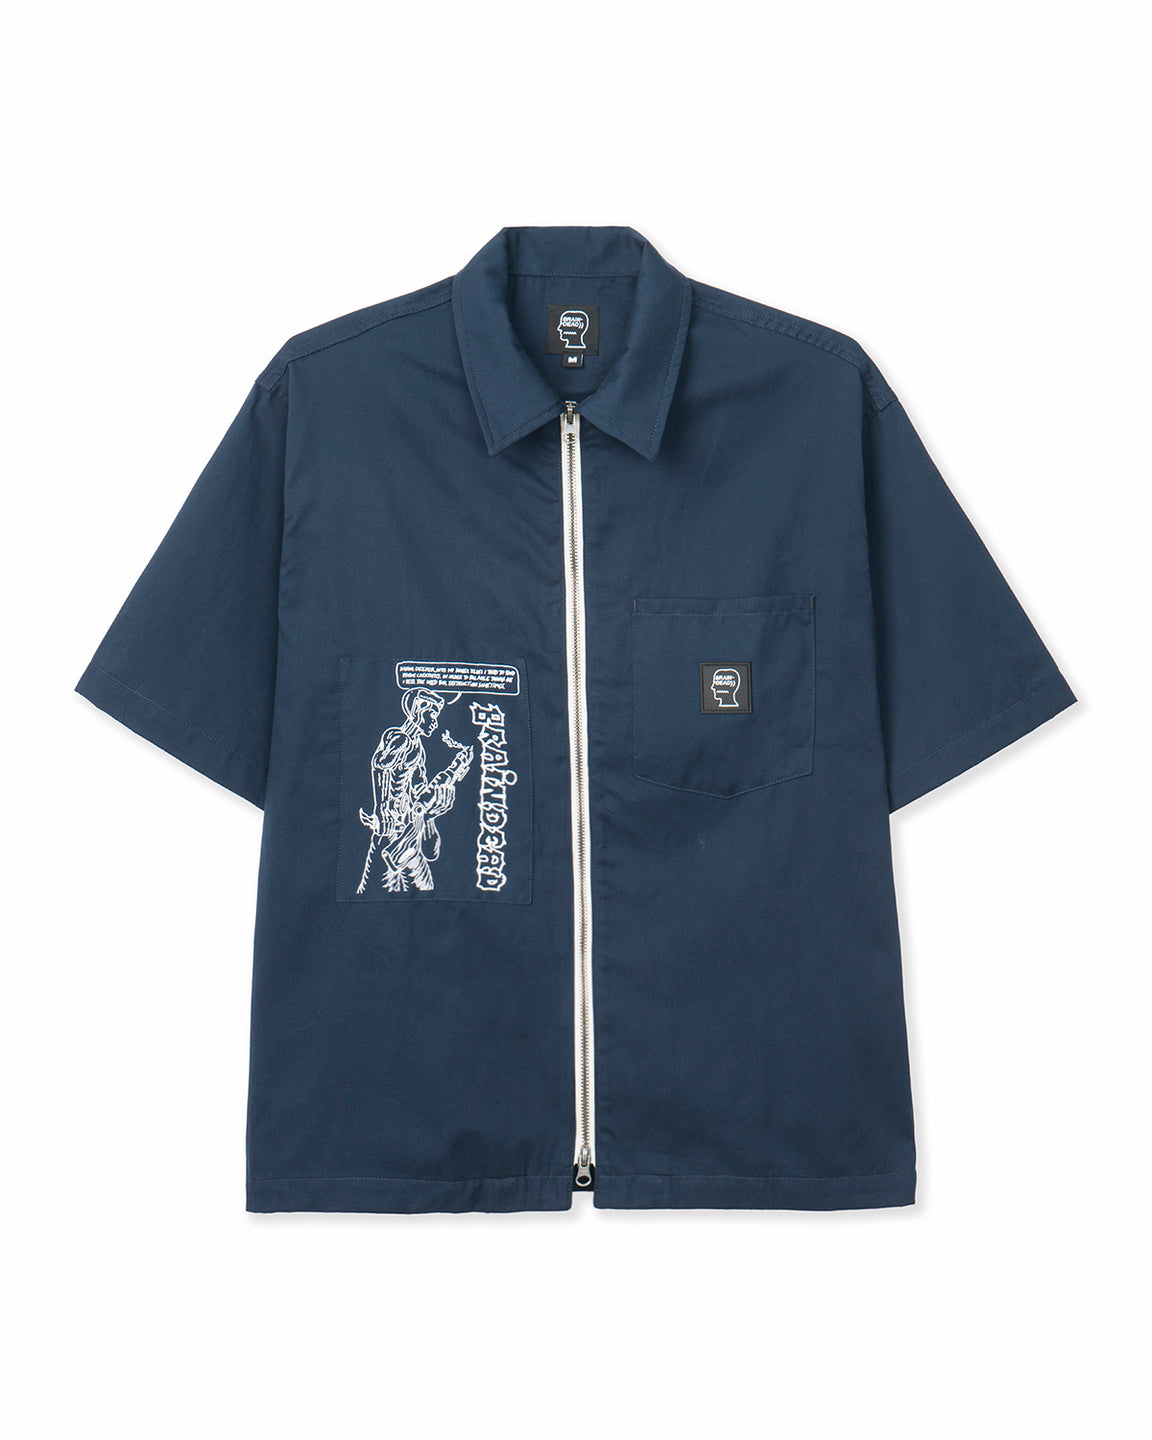 Kogan One Man Army Short Sleeve Zip-Front Shirt - Navy